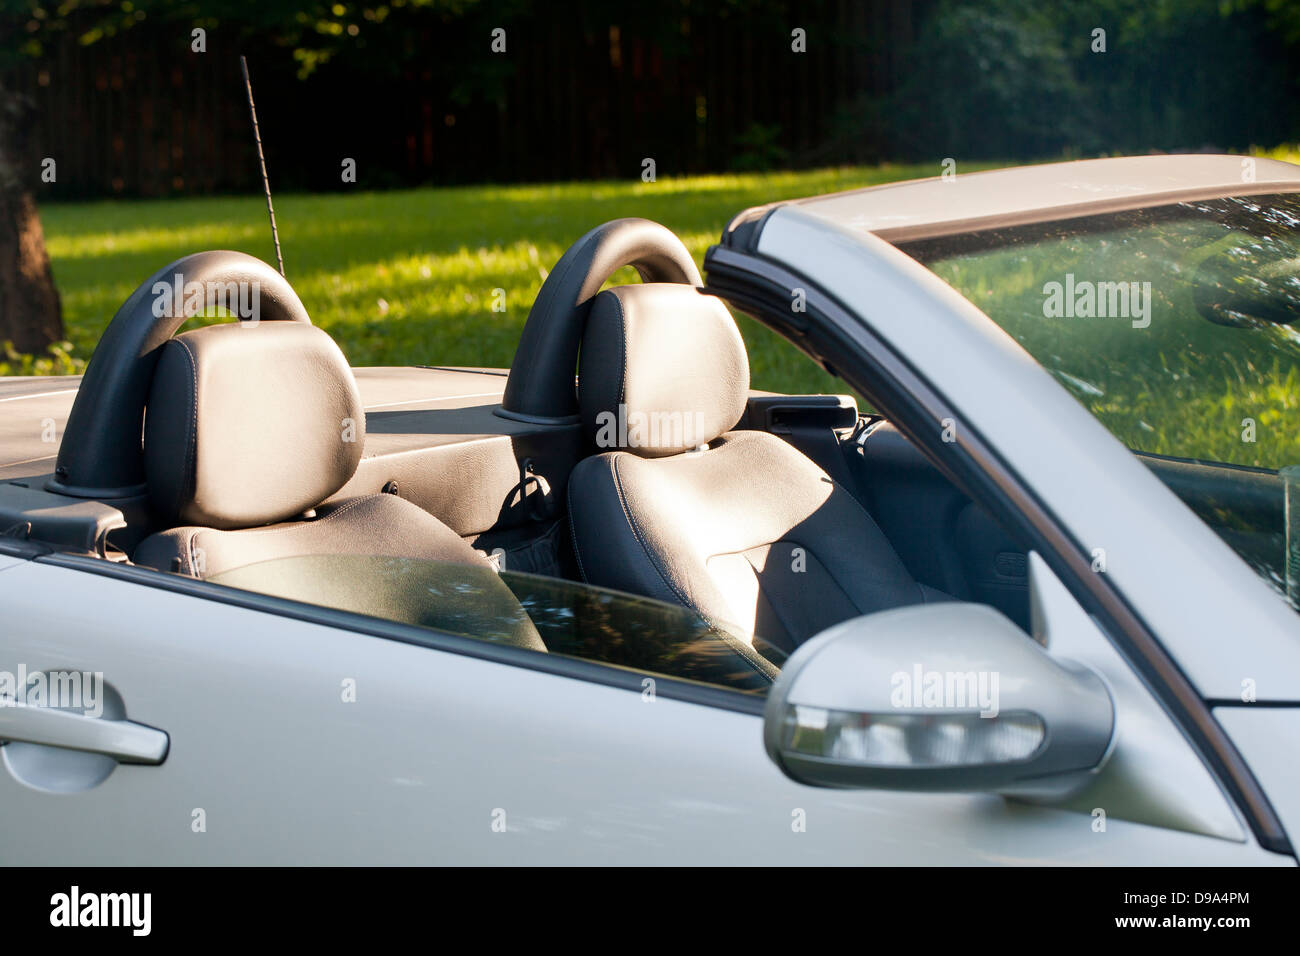 Two seat convertible car - Stock Image